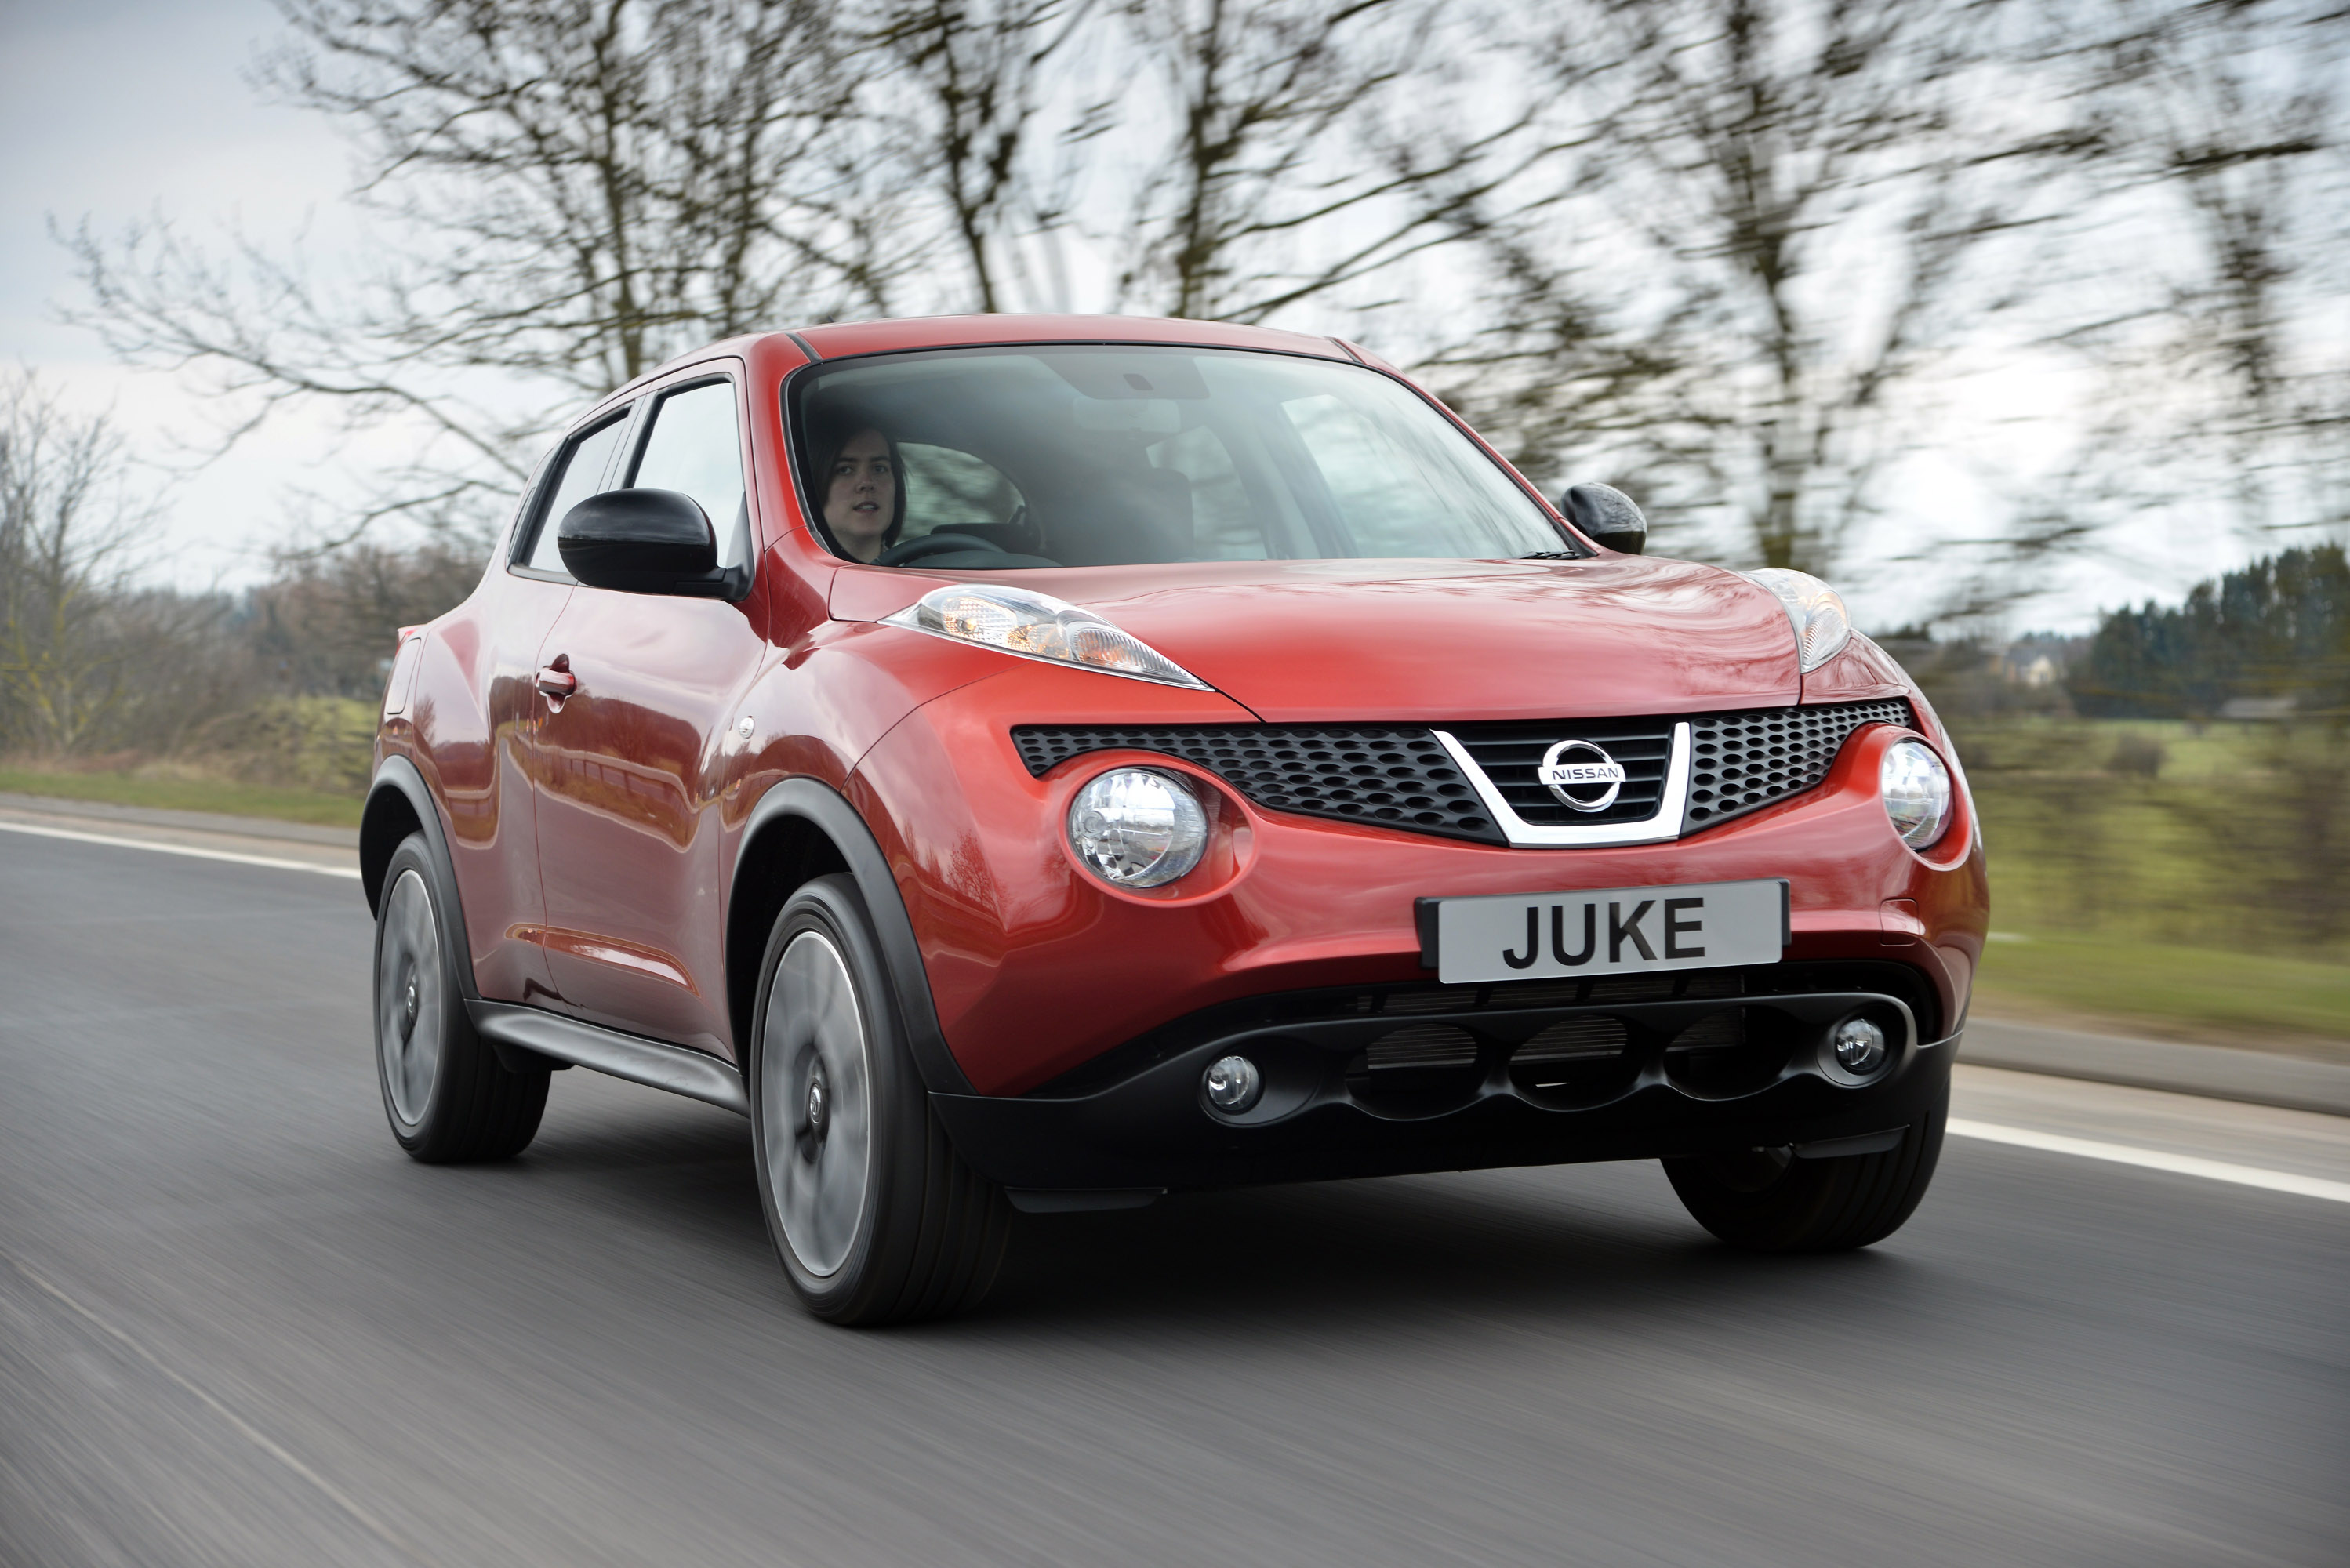 2013 nissan juke 1 5 dci improved fuel economy. Black Bedroom Furniture Sets. Home Design Ideas